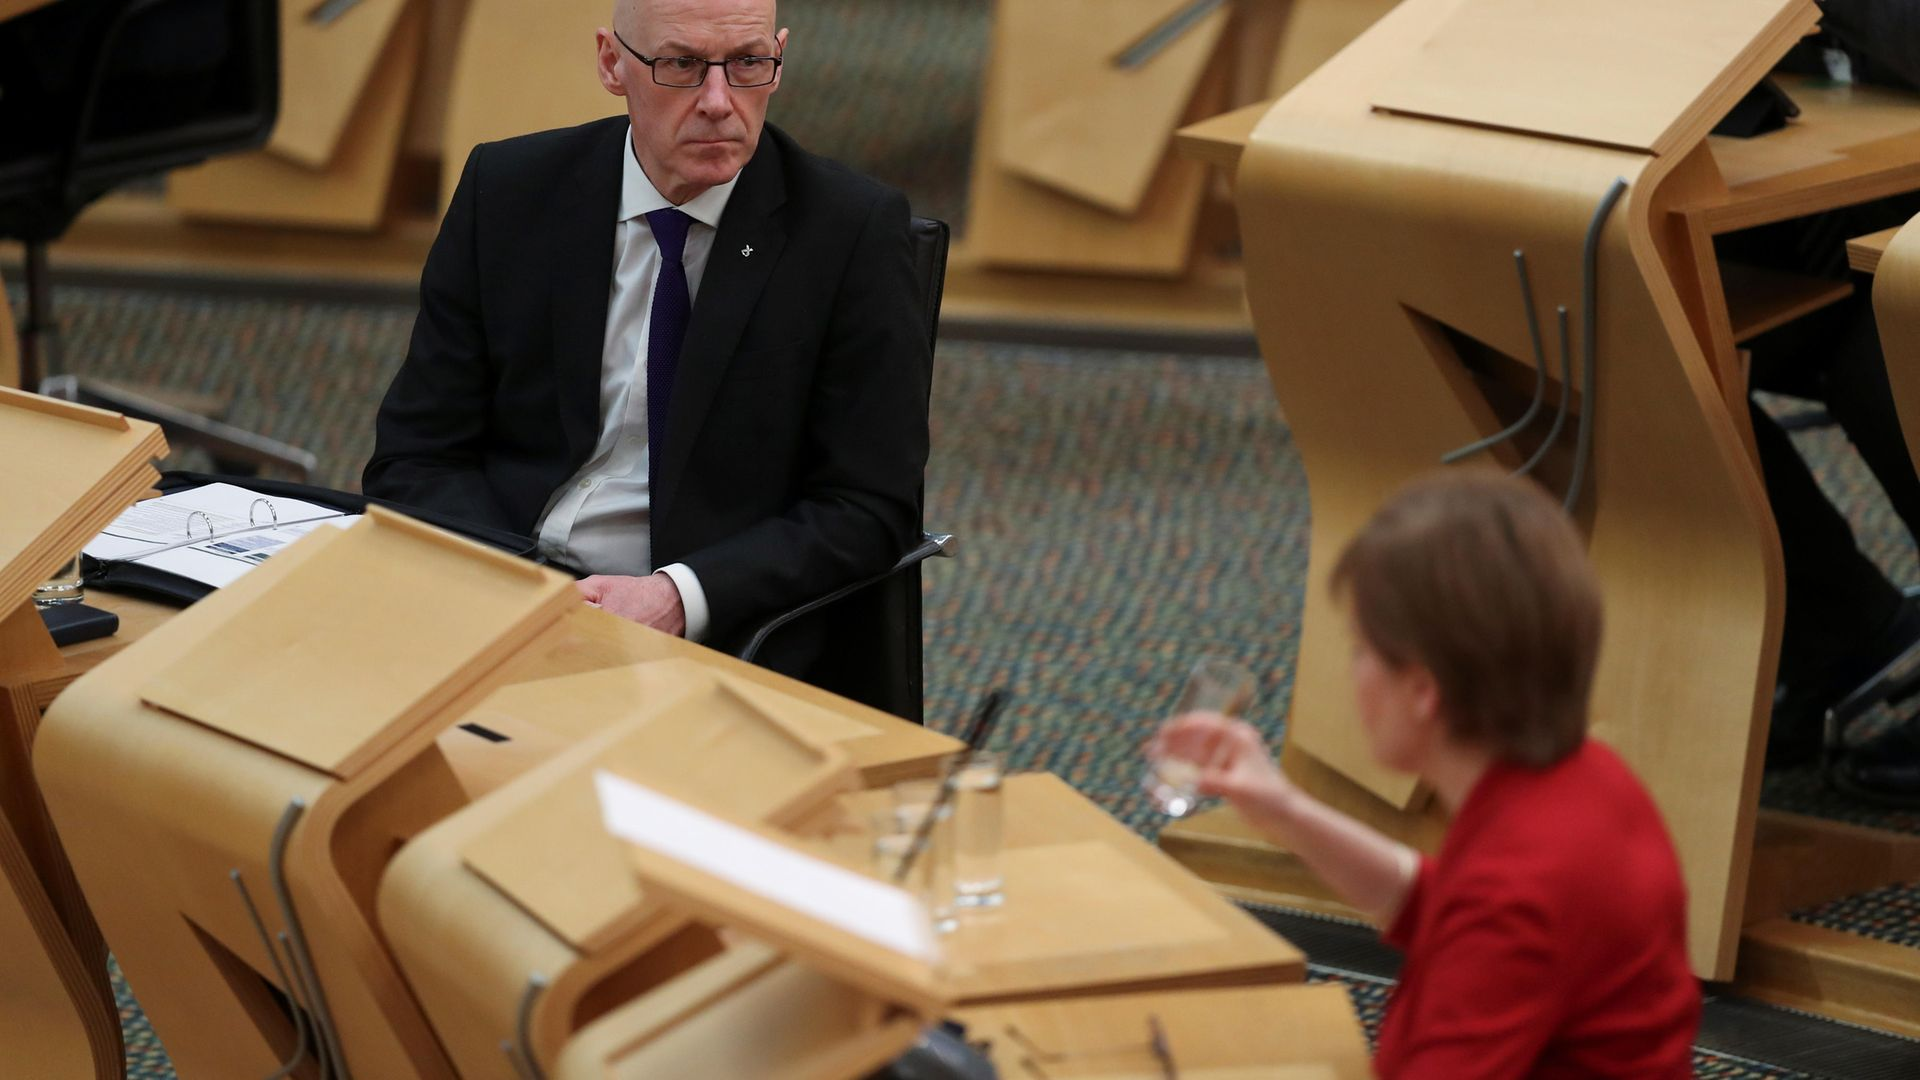 John Swinney (left) listens to First Minister Nicola Sturgeon as she makes a statement to the Scottish Parliament in Holyrood - Credit: PA